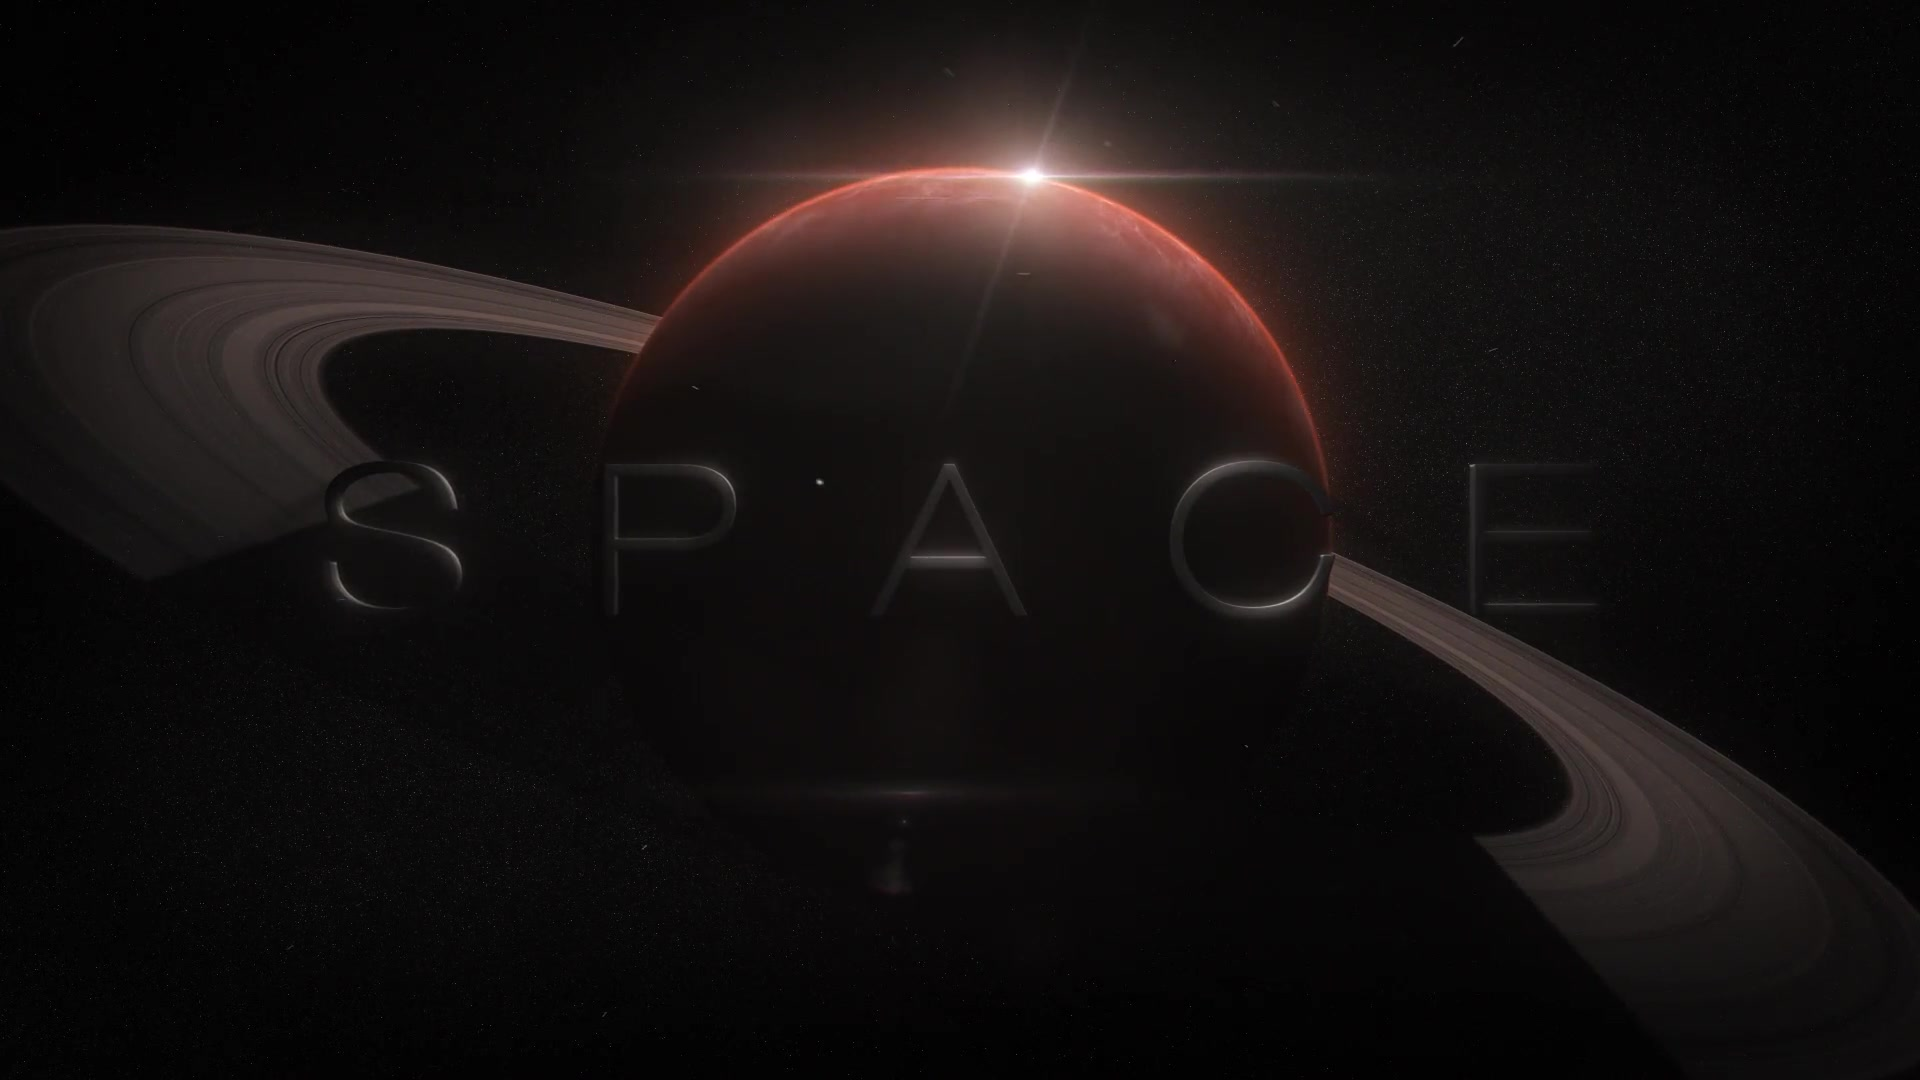 Planet Logo Title Reveal Videohive 20869322 After Effects Image 4